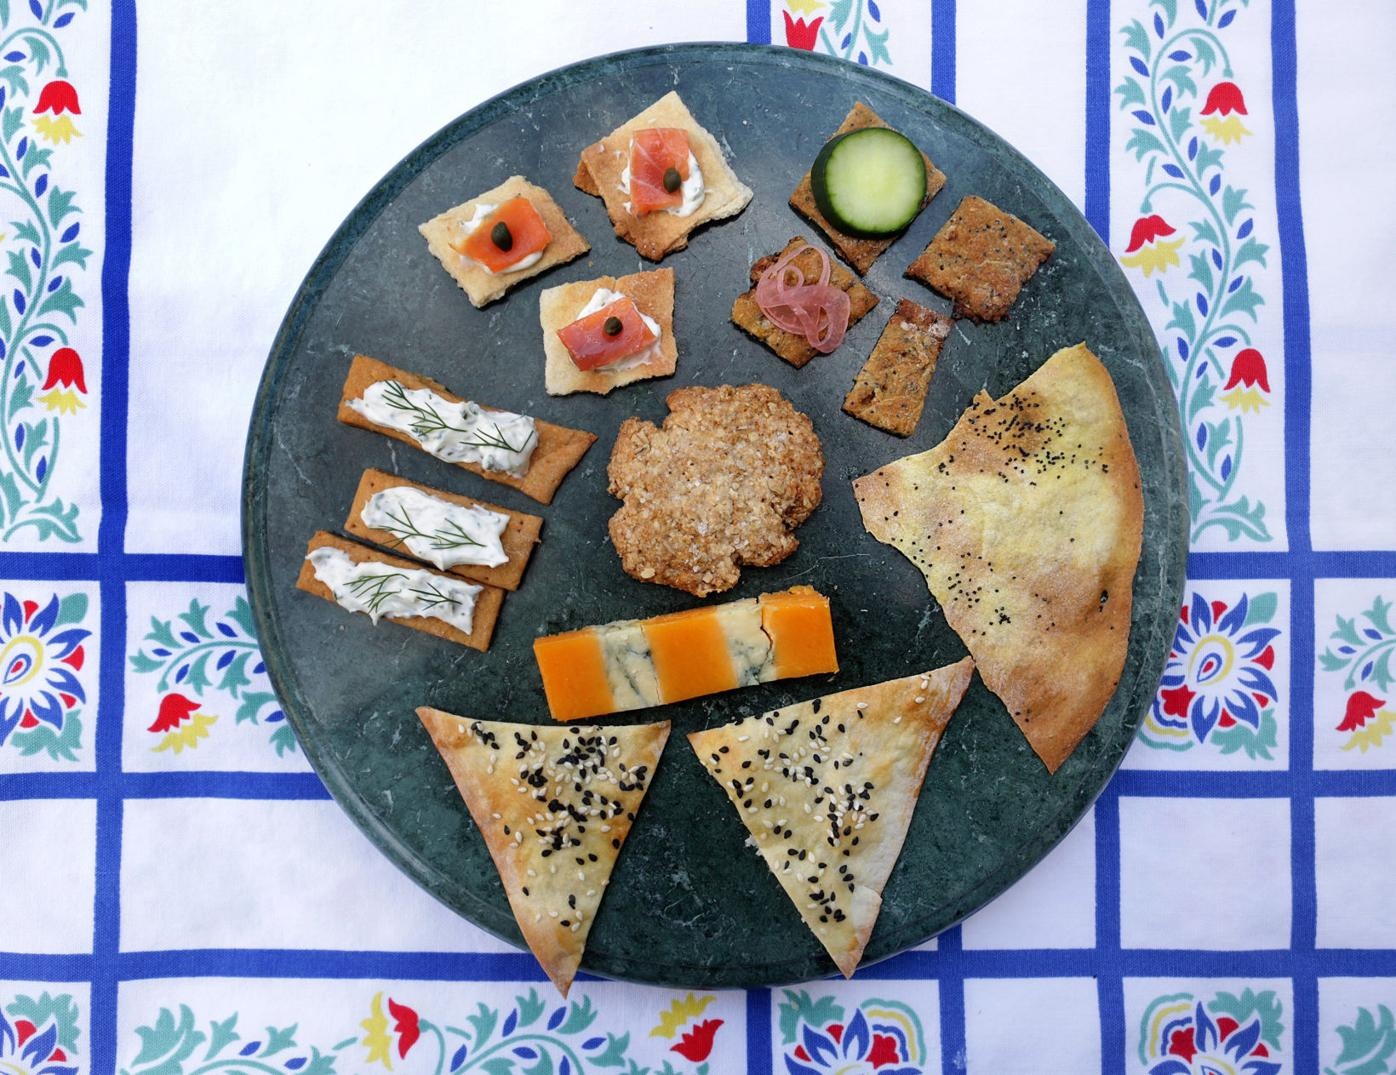 Homemade crackers and toppings